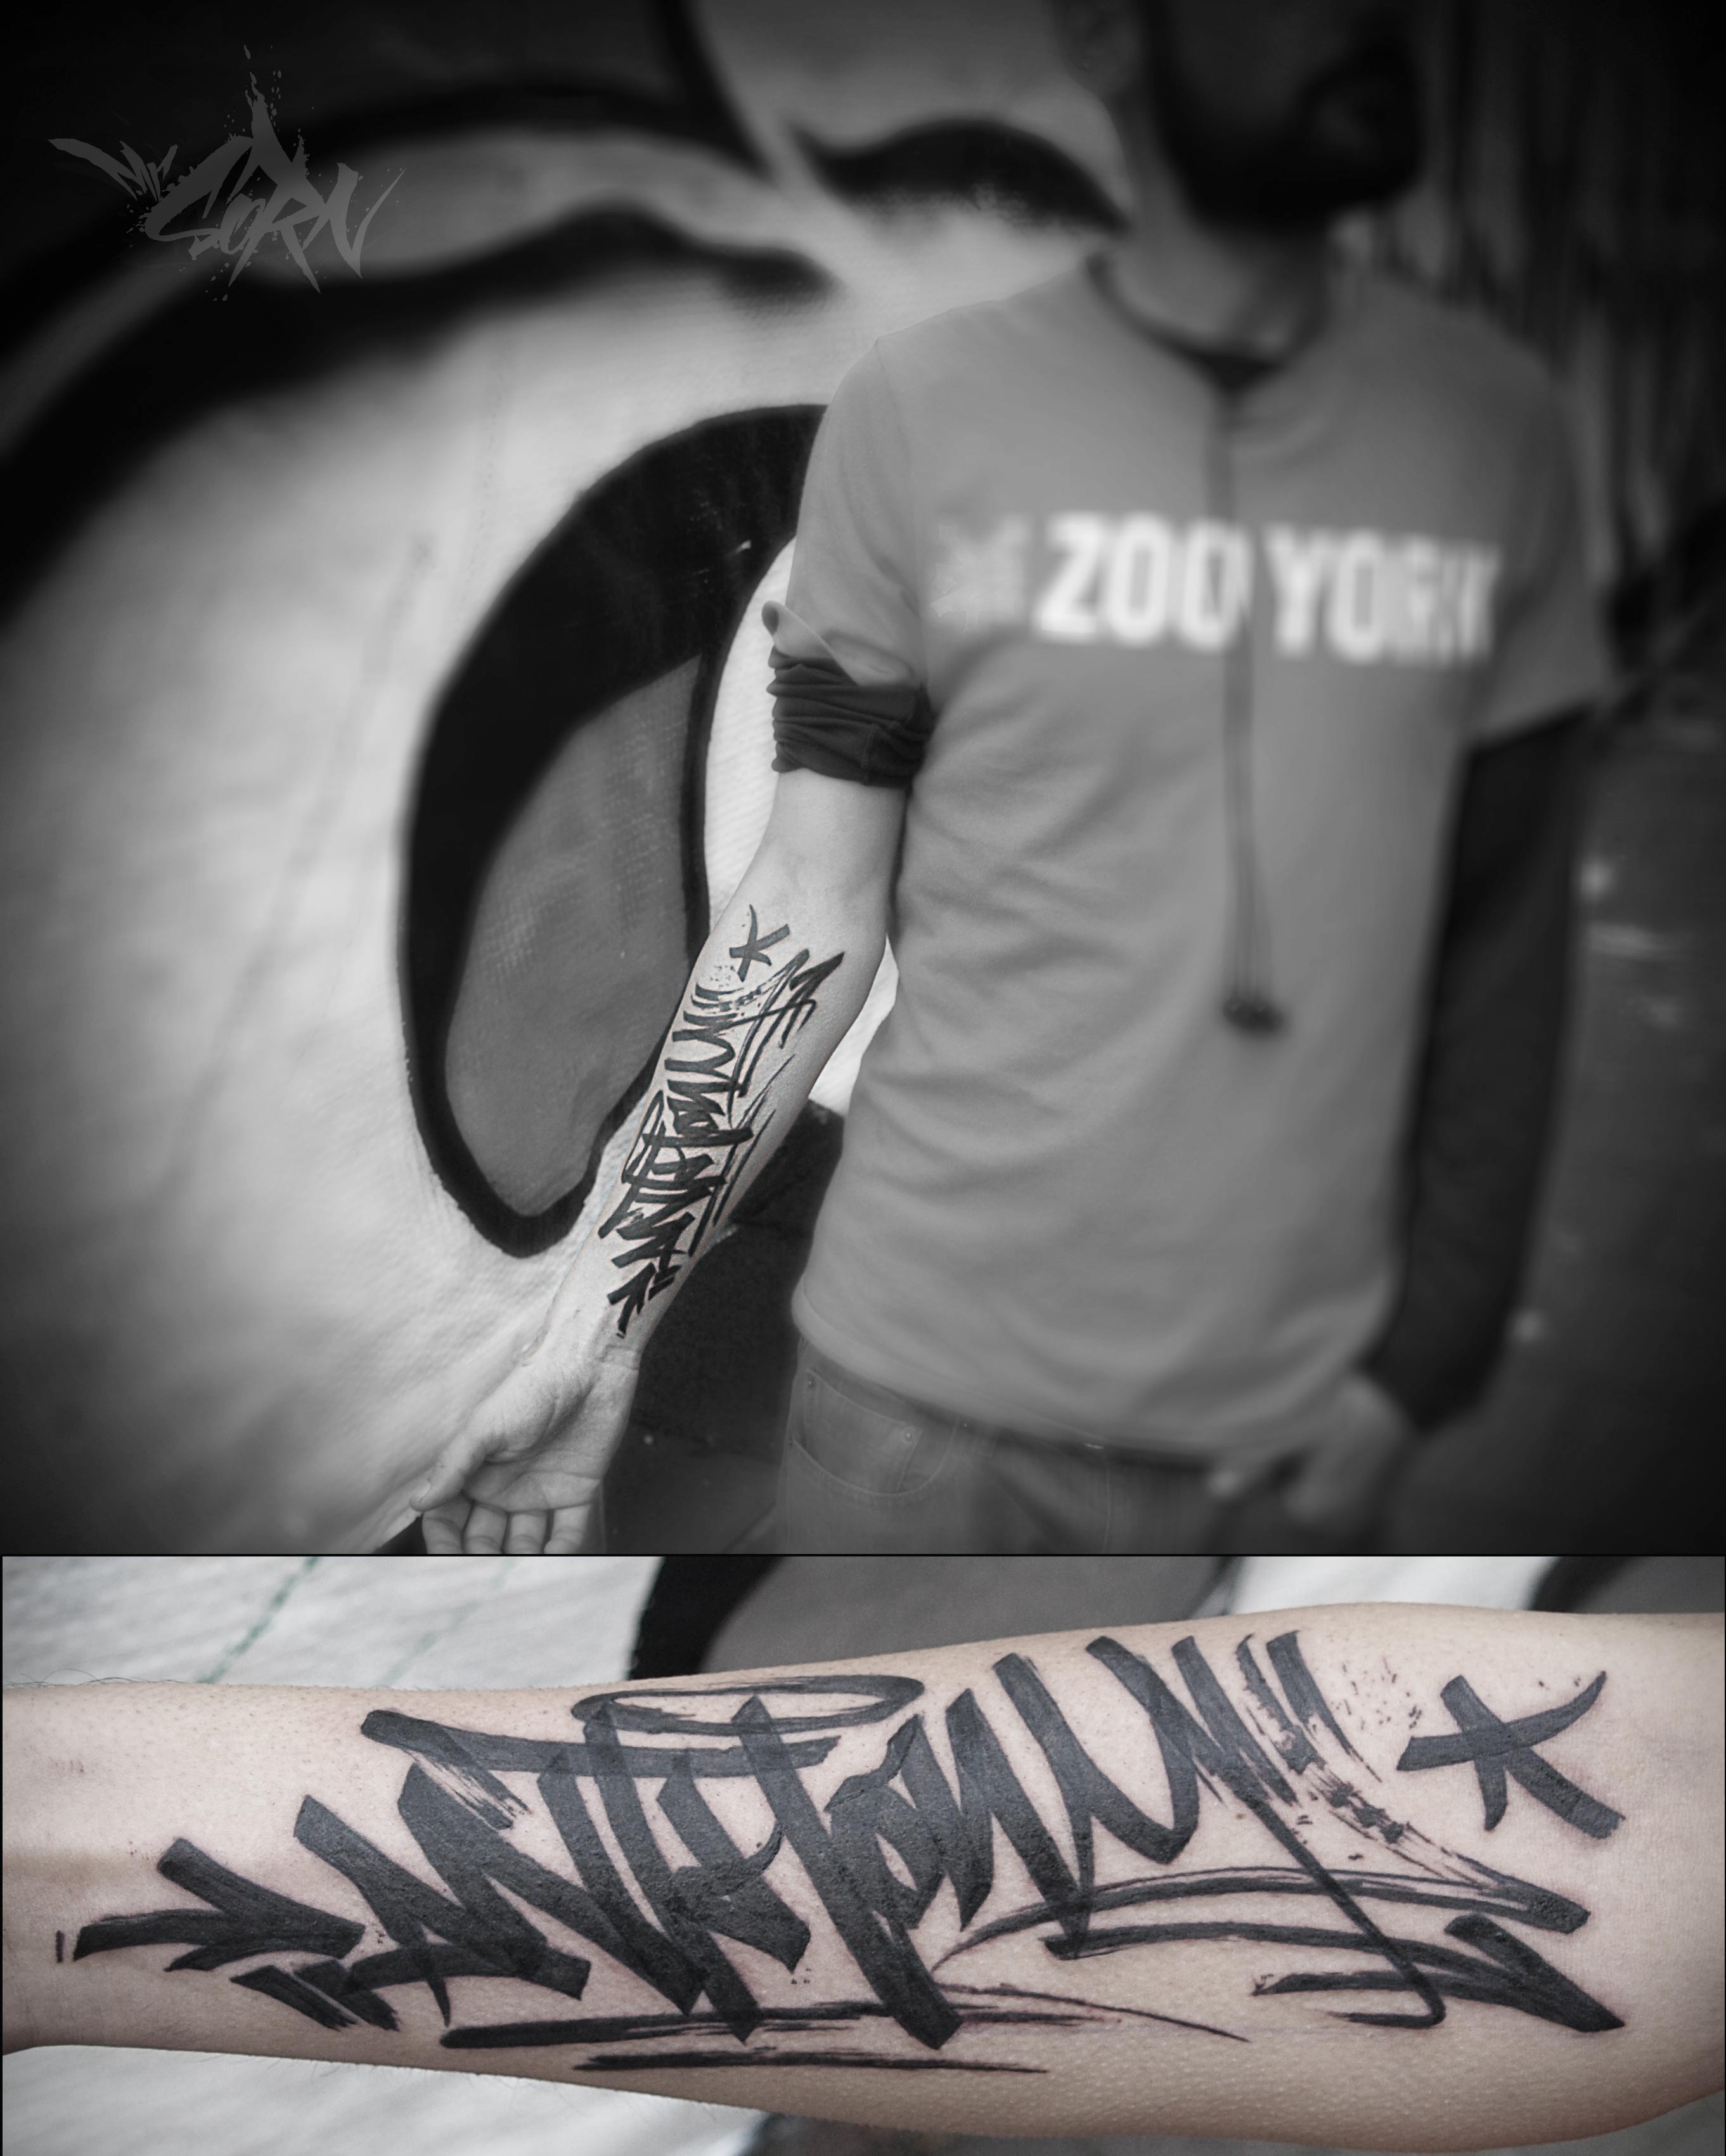 sorn-smb-tattoo-anthony-tag-graffiti.jpg